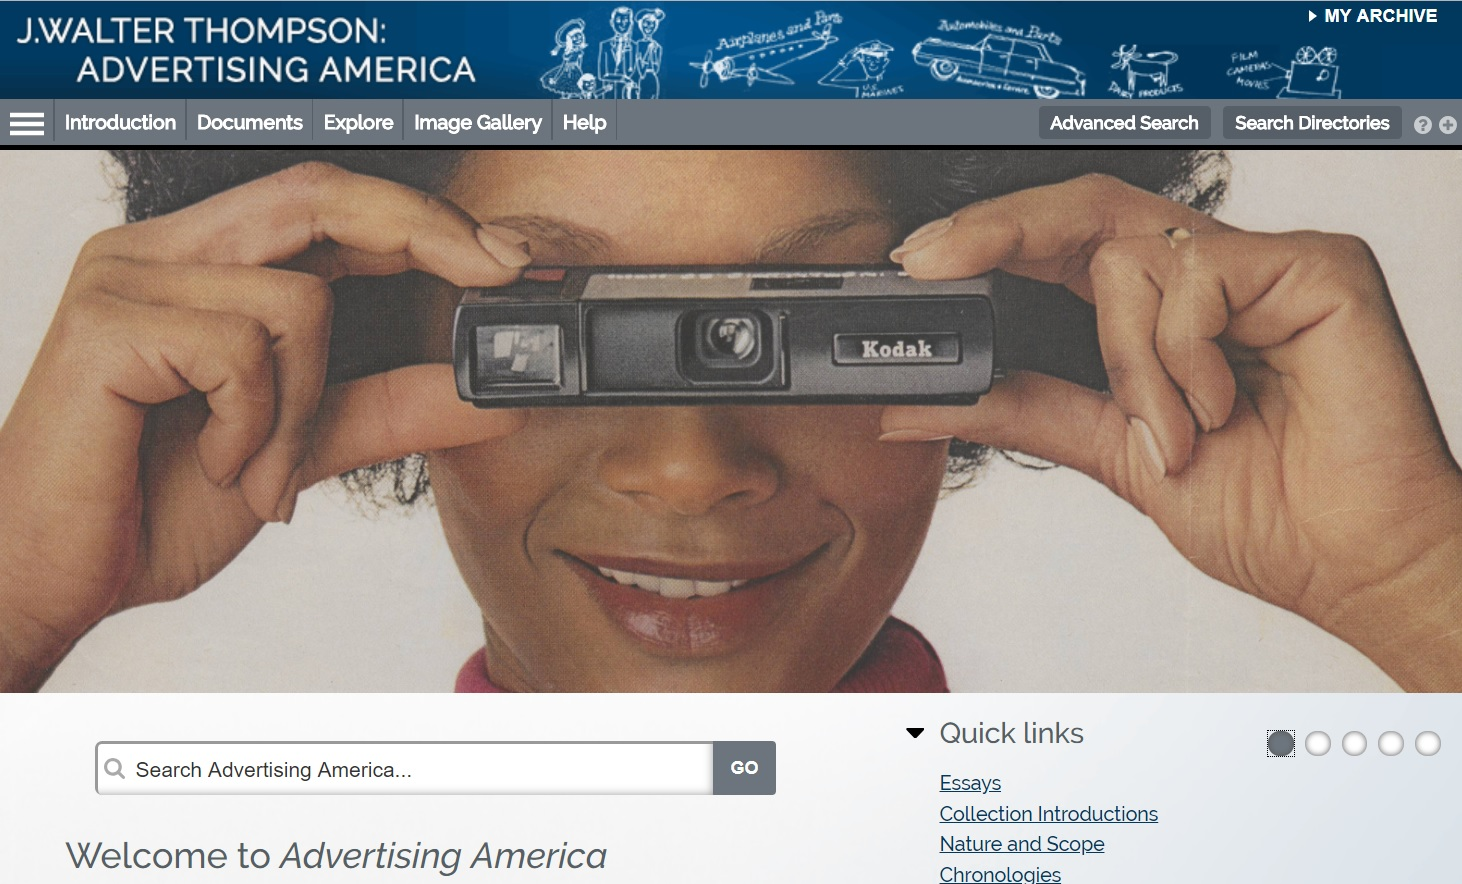 Homepage for J. Walter Thompson: Advertising America database featuring 1972 Kodak ad from the JWT Advertisements Collection.